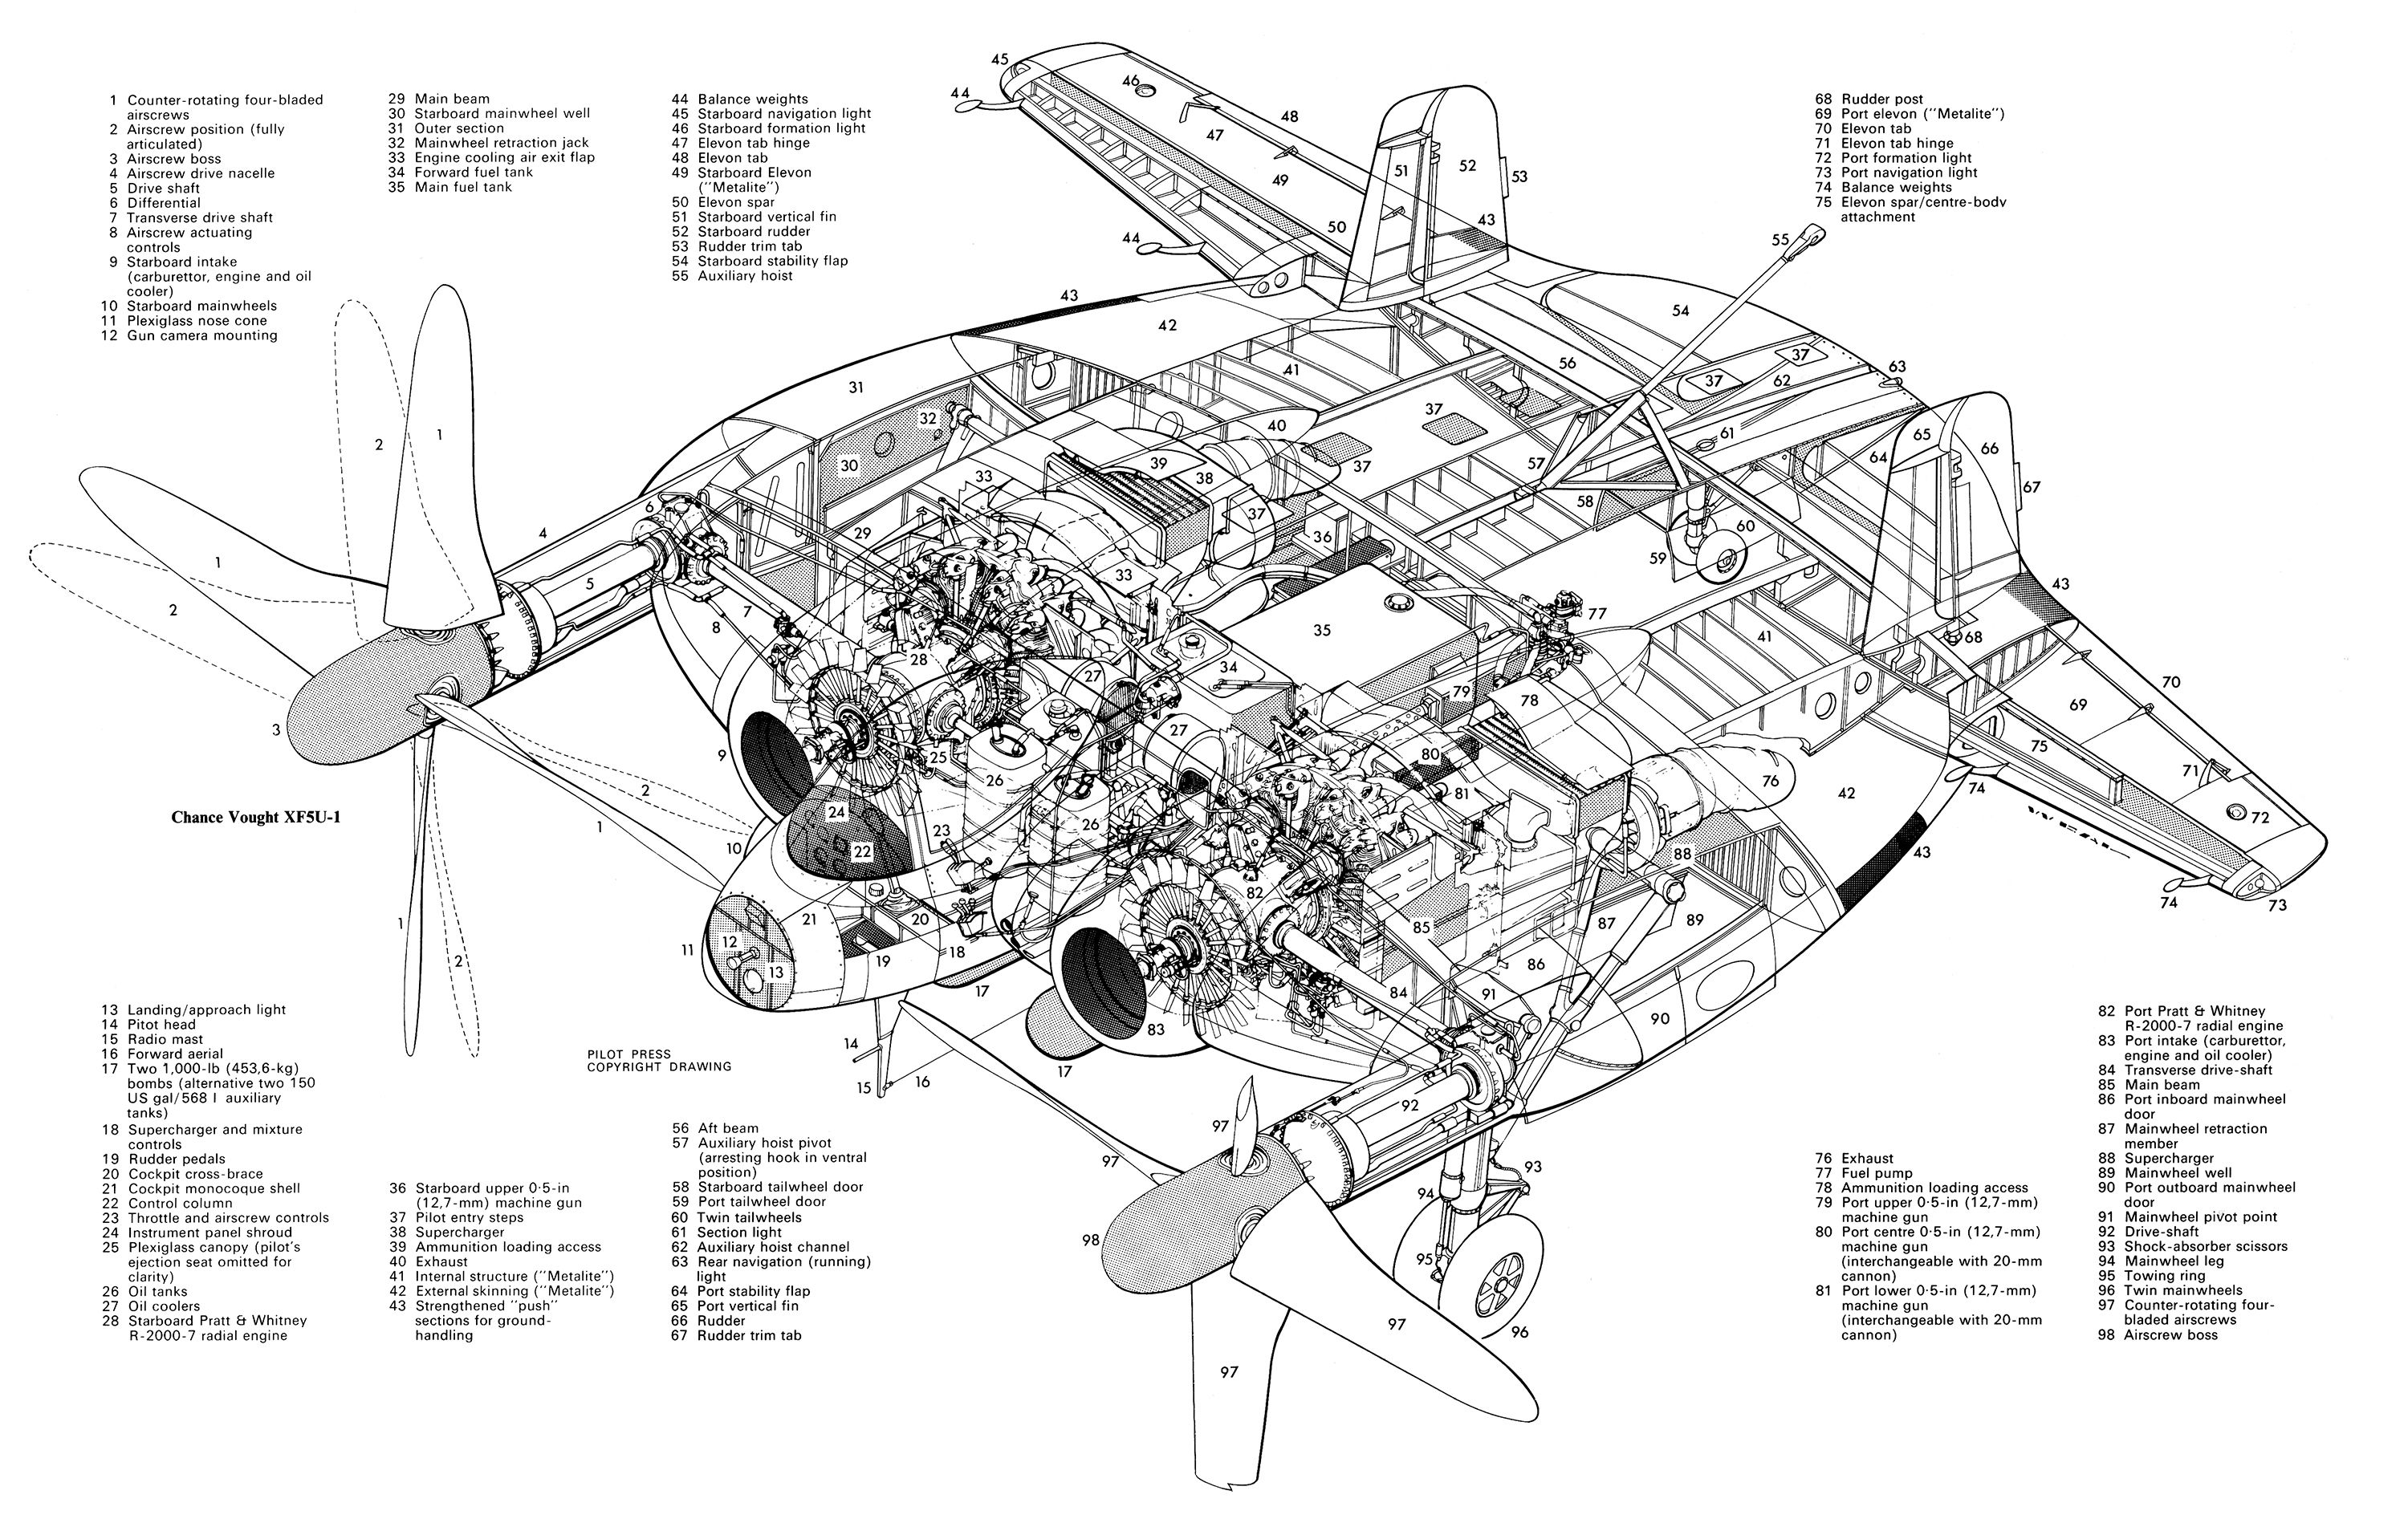 Cutaway View Of A Stalk Flat Four Motor With Images Vw Engine